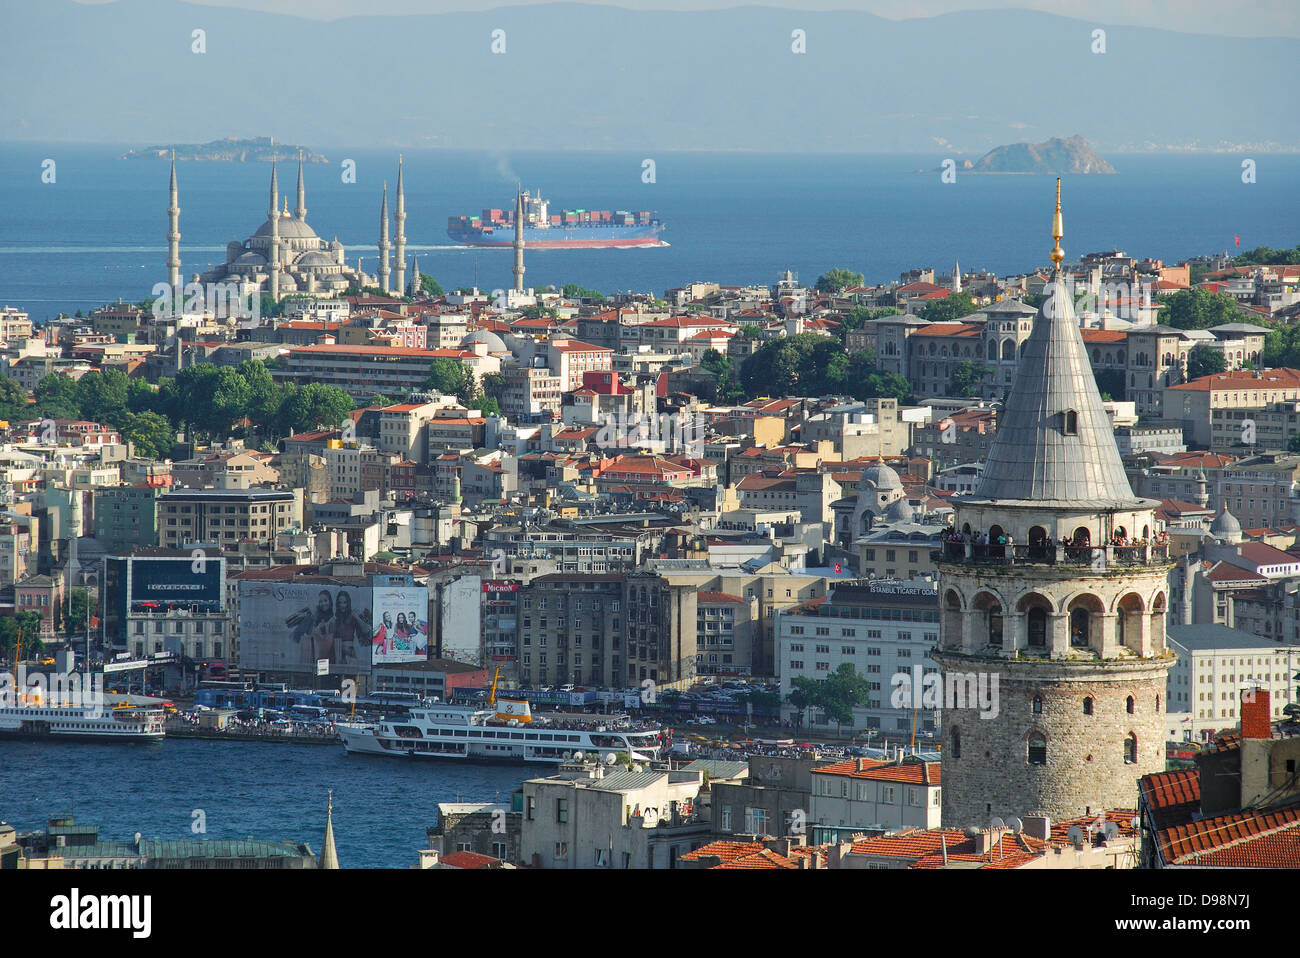 ISTANBUL, TURKEY. A view of Sultanahmet, the Blue Mosque and the Sea of Marmara, with the Galata Tower in Beyoglu - Stock Image